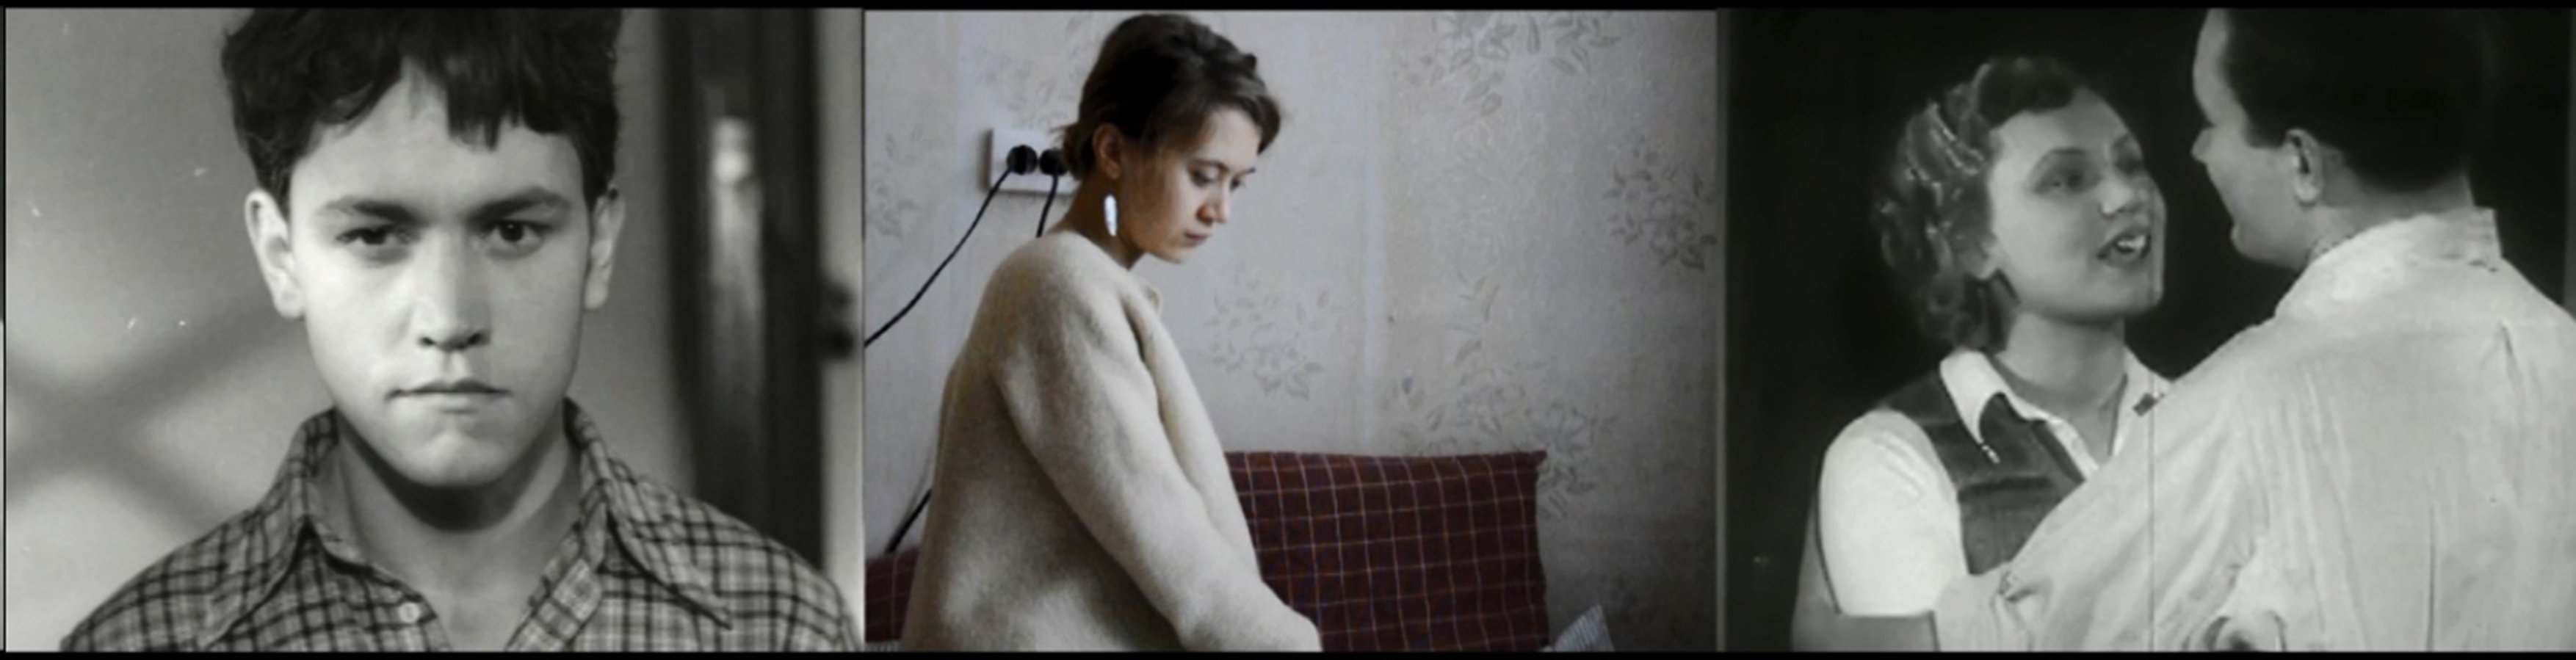 Still from the video Requiem for Romantic Love, 2015